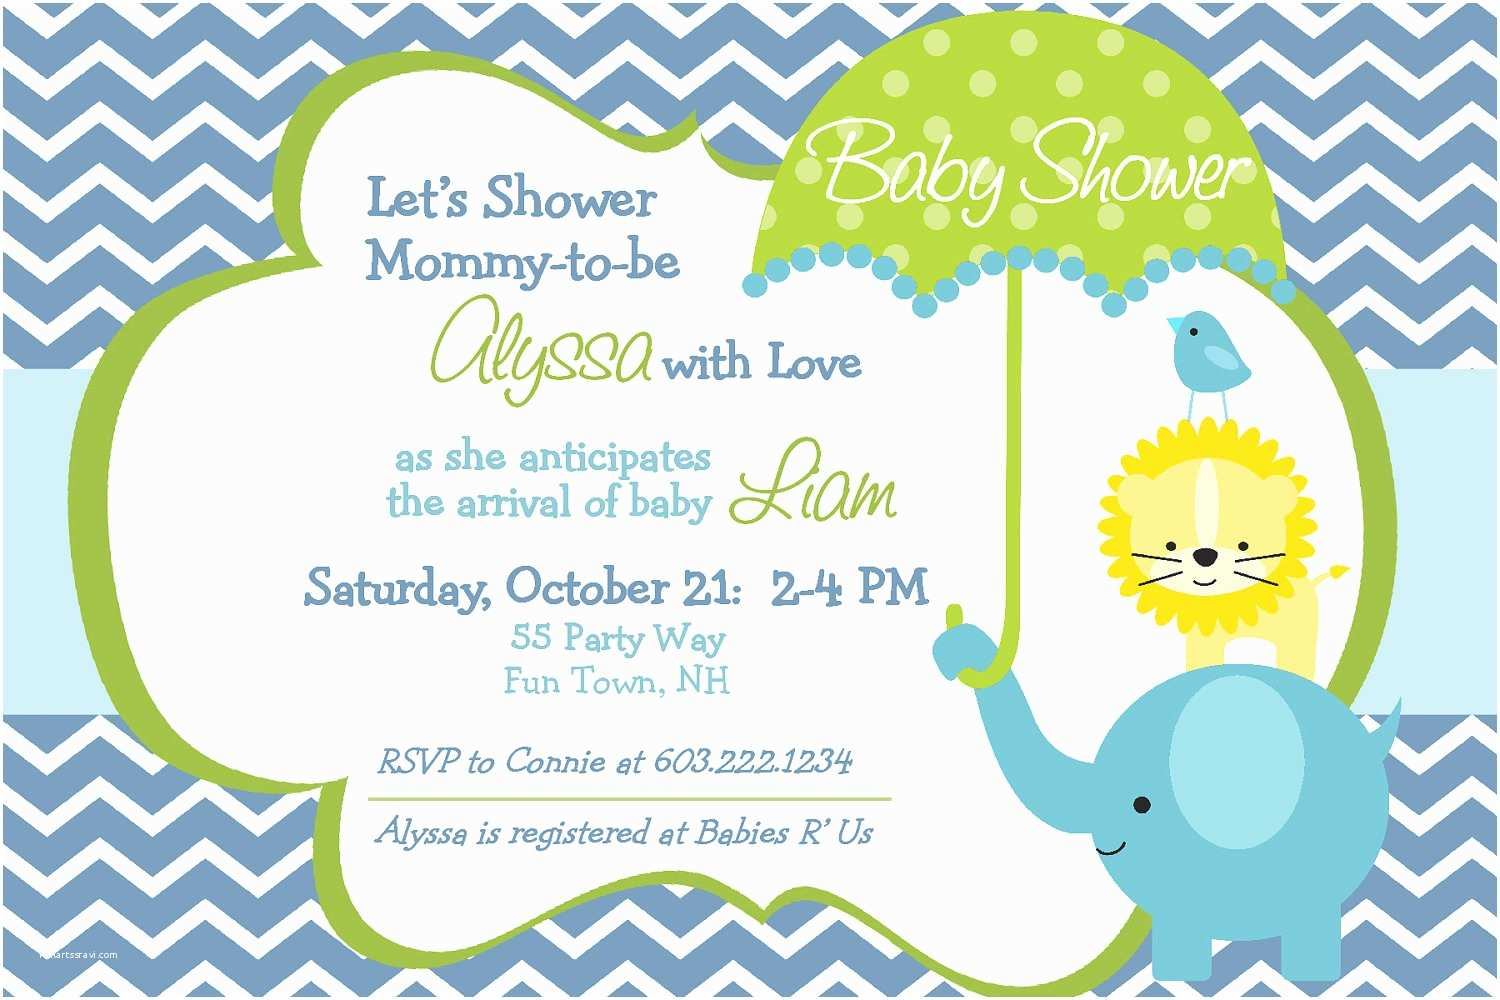 Baby Shower Invitations for Boys Baby Shower Invitations for Boy & Girls Baby Shower